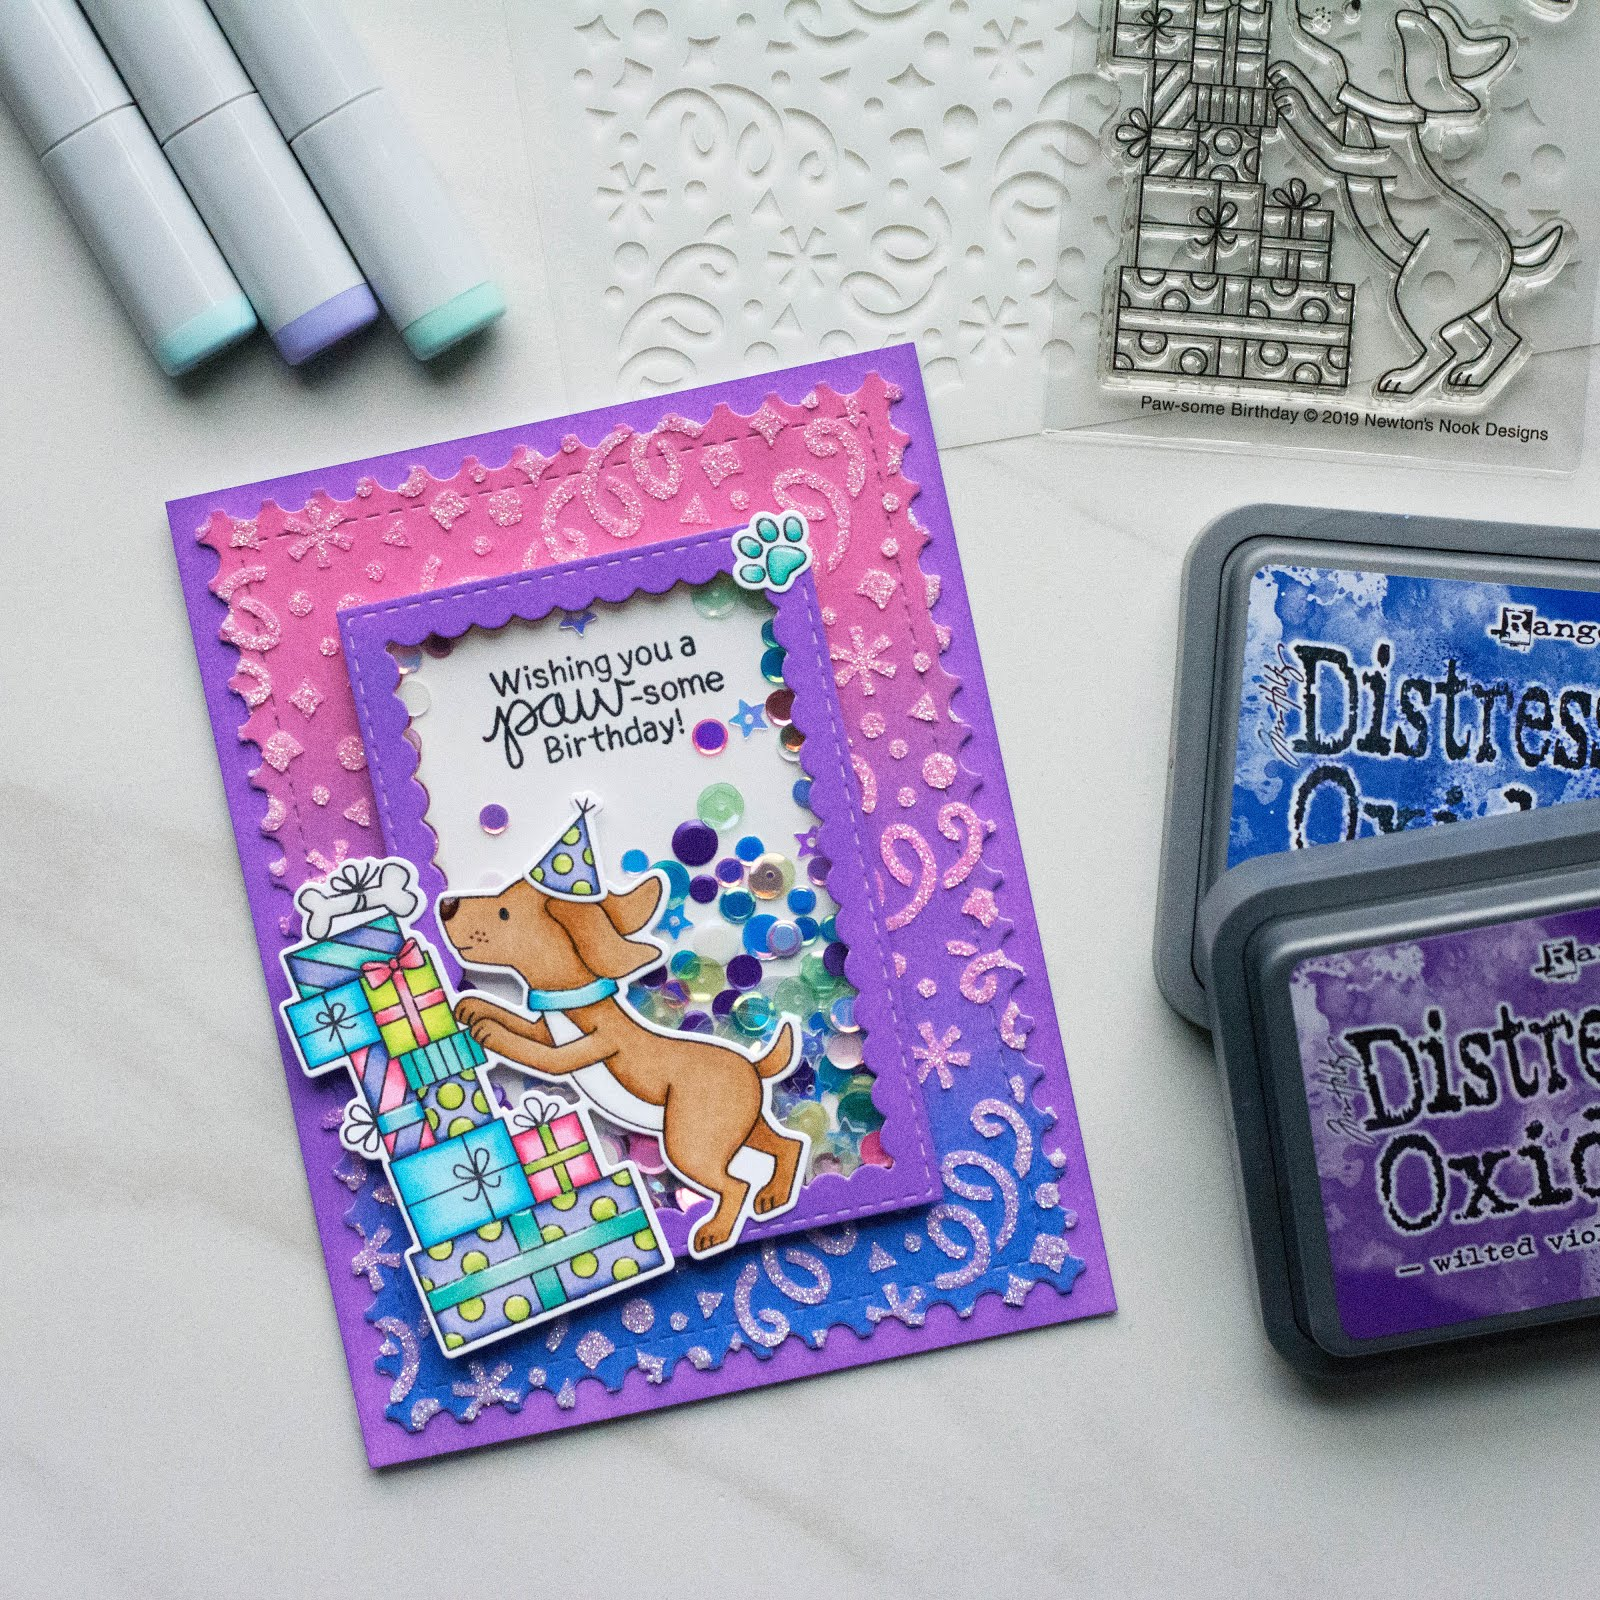 Paw-Some Shaker Birthday Cards by June Guest Designer Amy Tollner | Paw-some Birthday Stamp Set, Confetti Stencil, Framework Die Set, and Frames & Flags Die Set by Newton's Nook Designs #newtonsnook #handmade